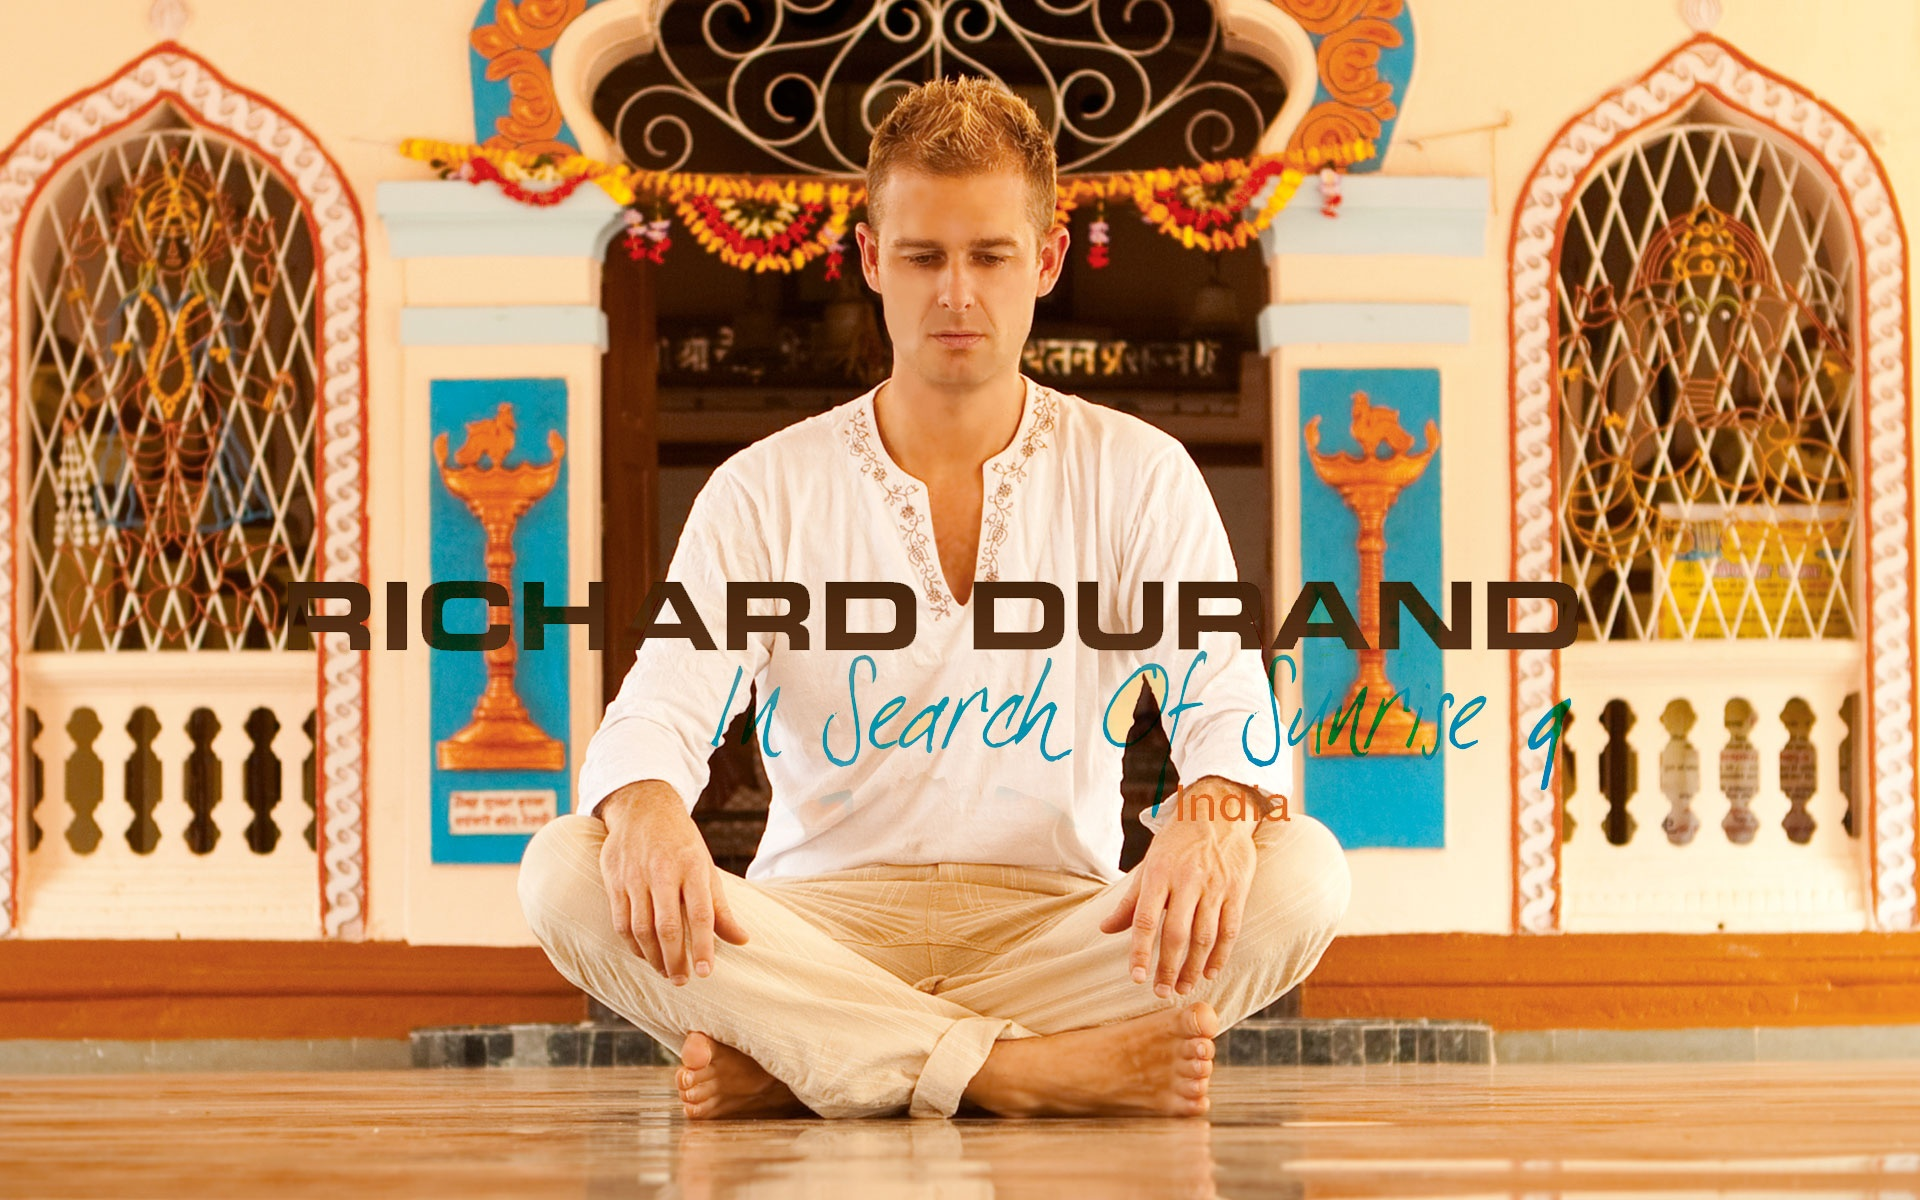 Richard Durand ISOS 9 India HD and Wide Wallpapers